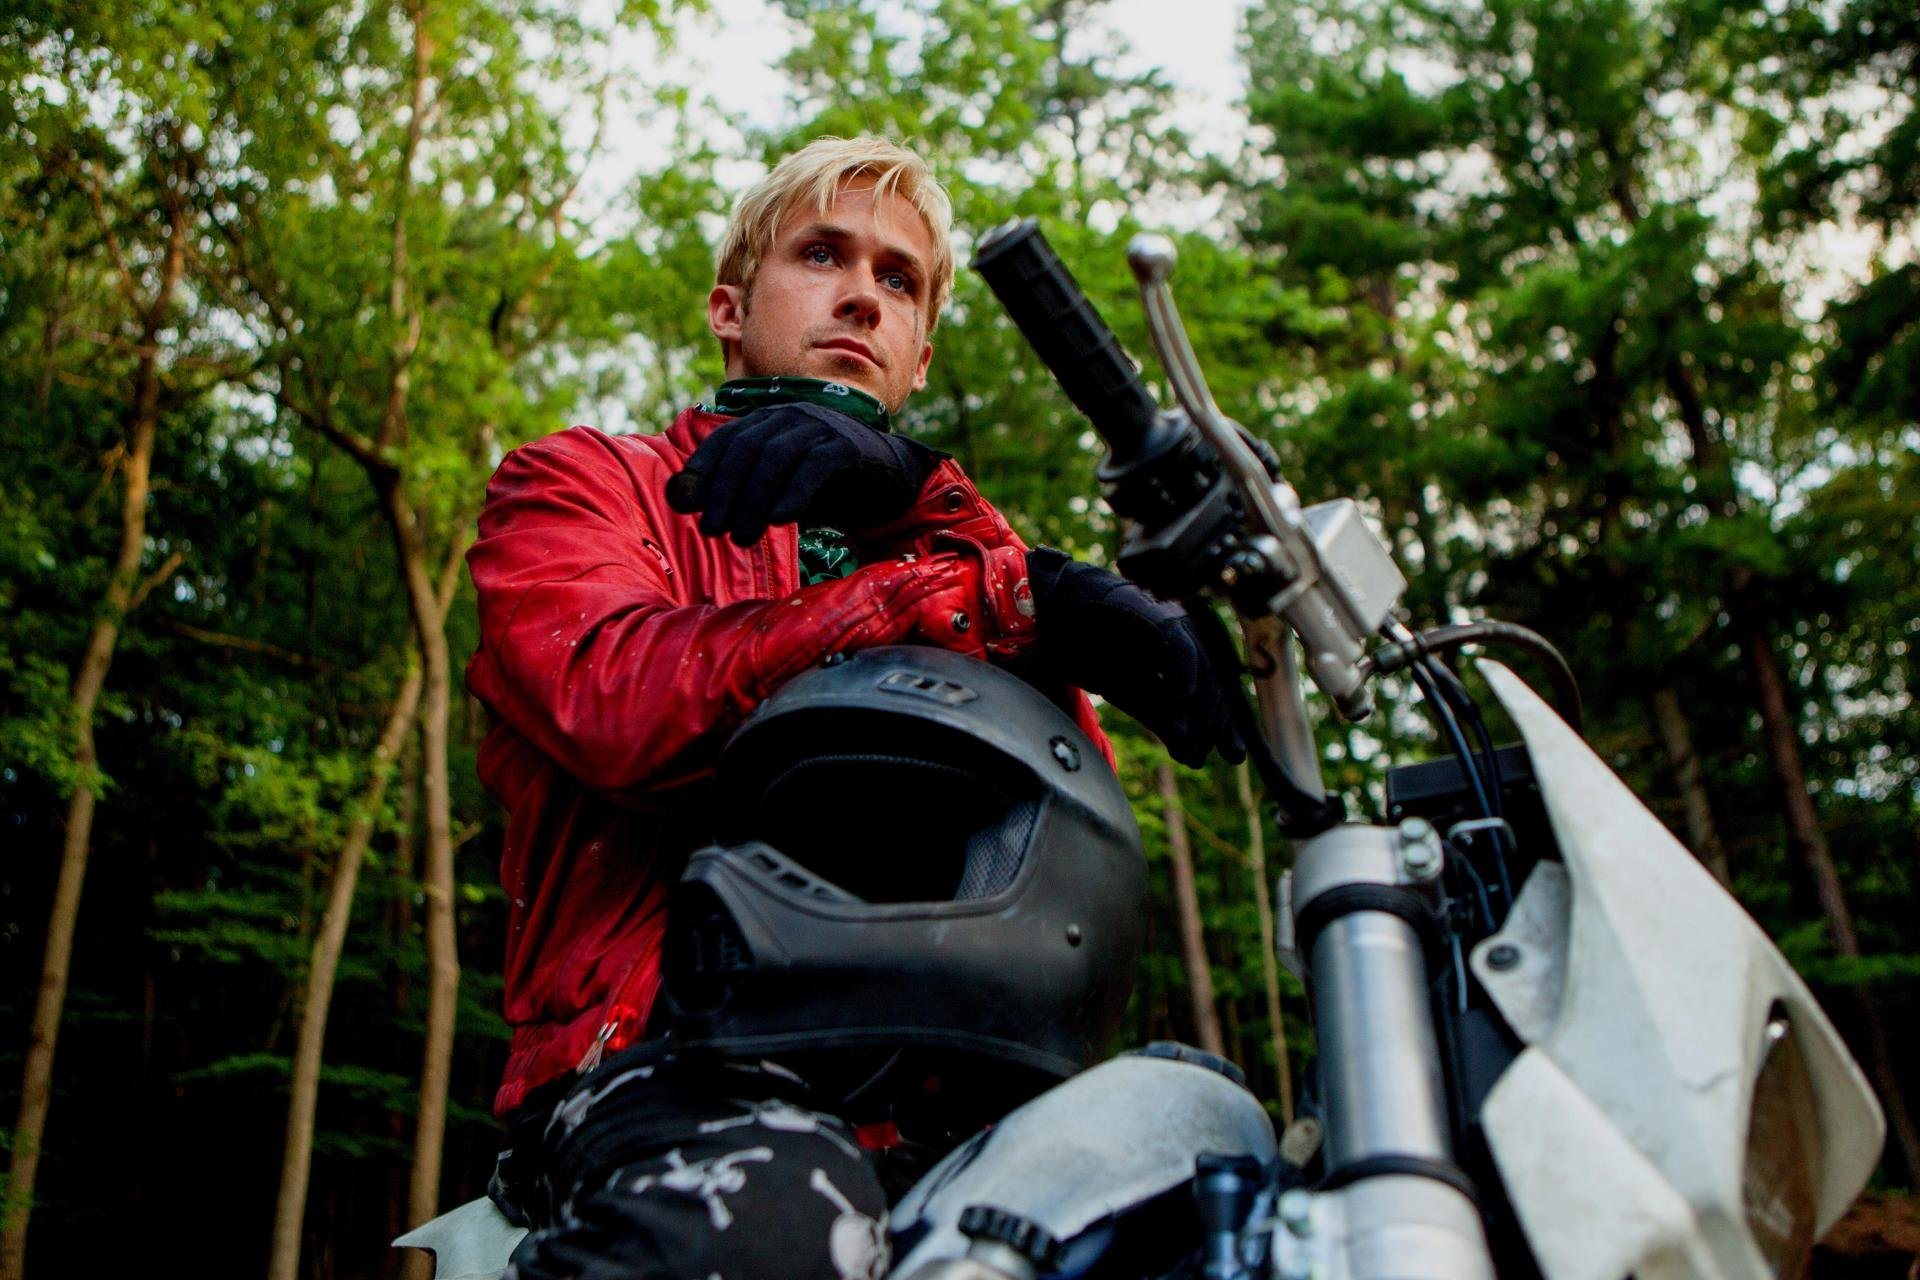 Awesome Luke (The Place Beyond The Pines) free wallpaper ID:466010 for hd 1920x1280 PC